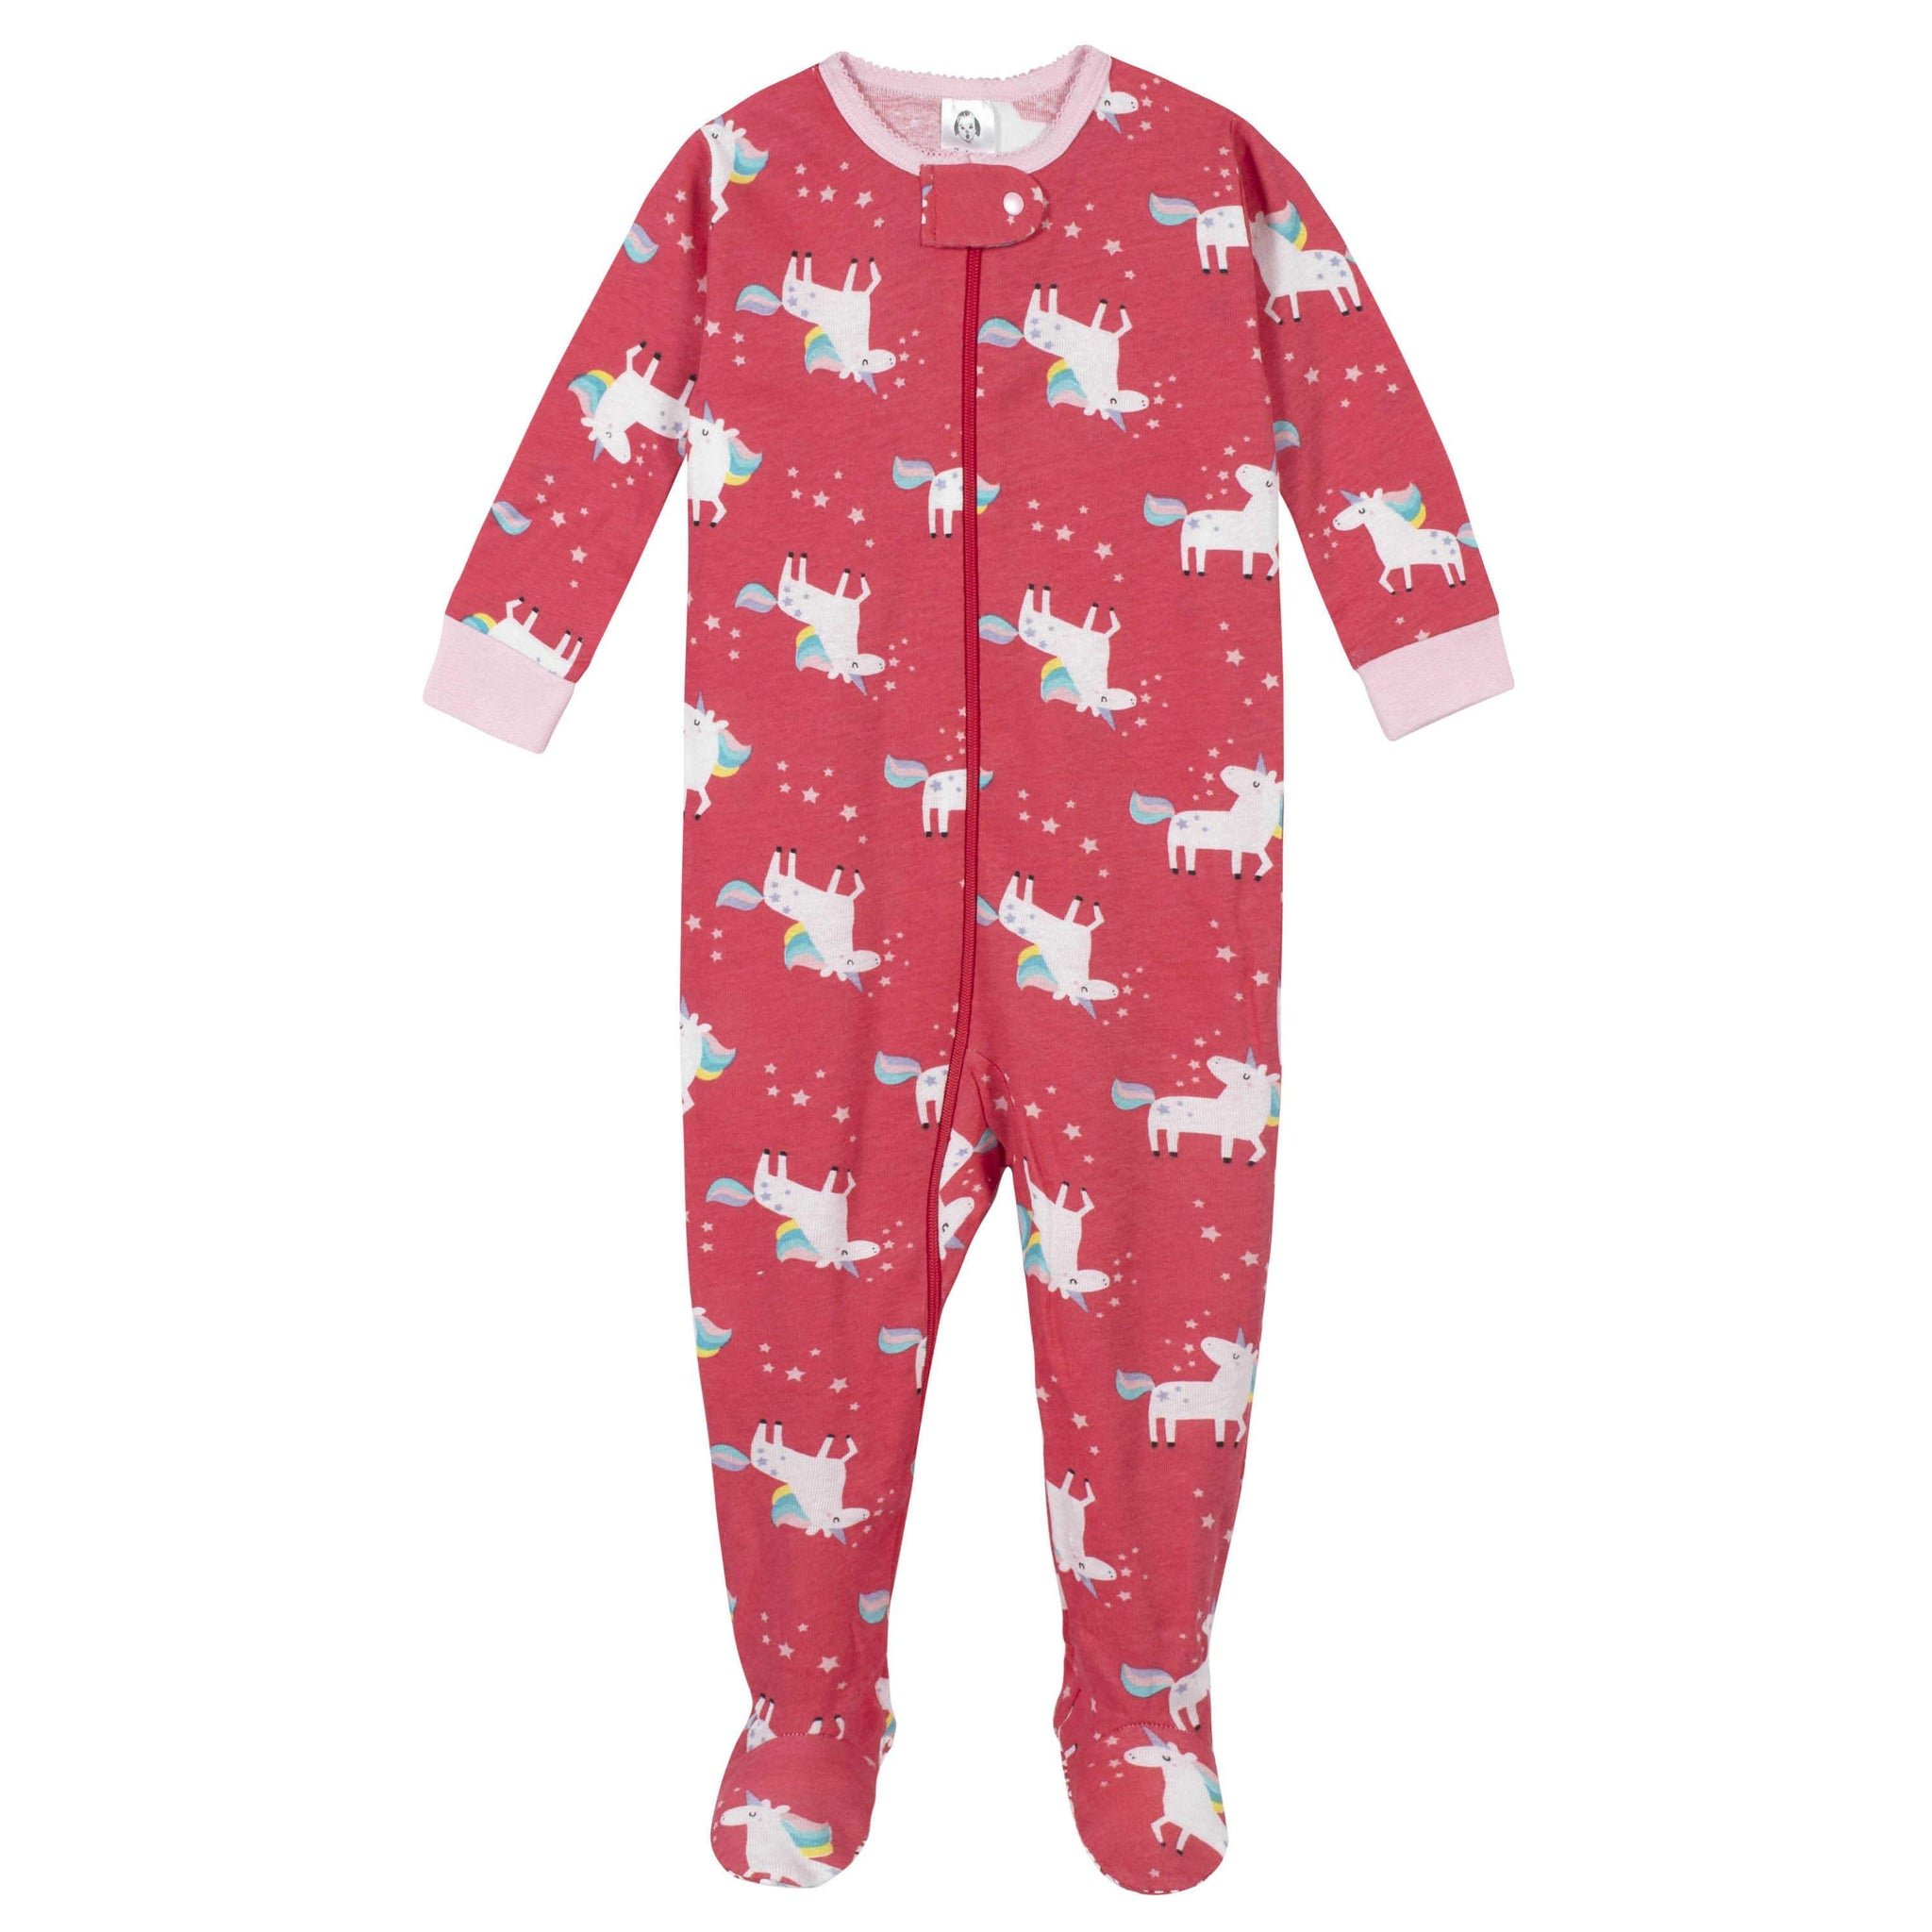 Gerber® 4-Pack Baby Girls Unicorn and Sunshine Footed Pajamas-Gerber Childrenswear